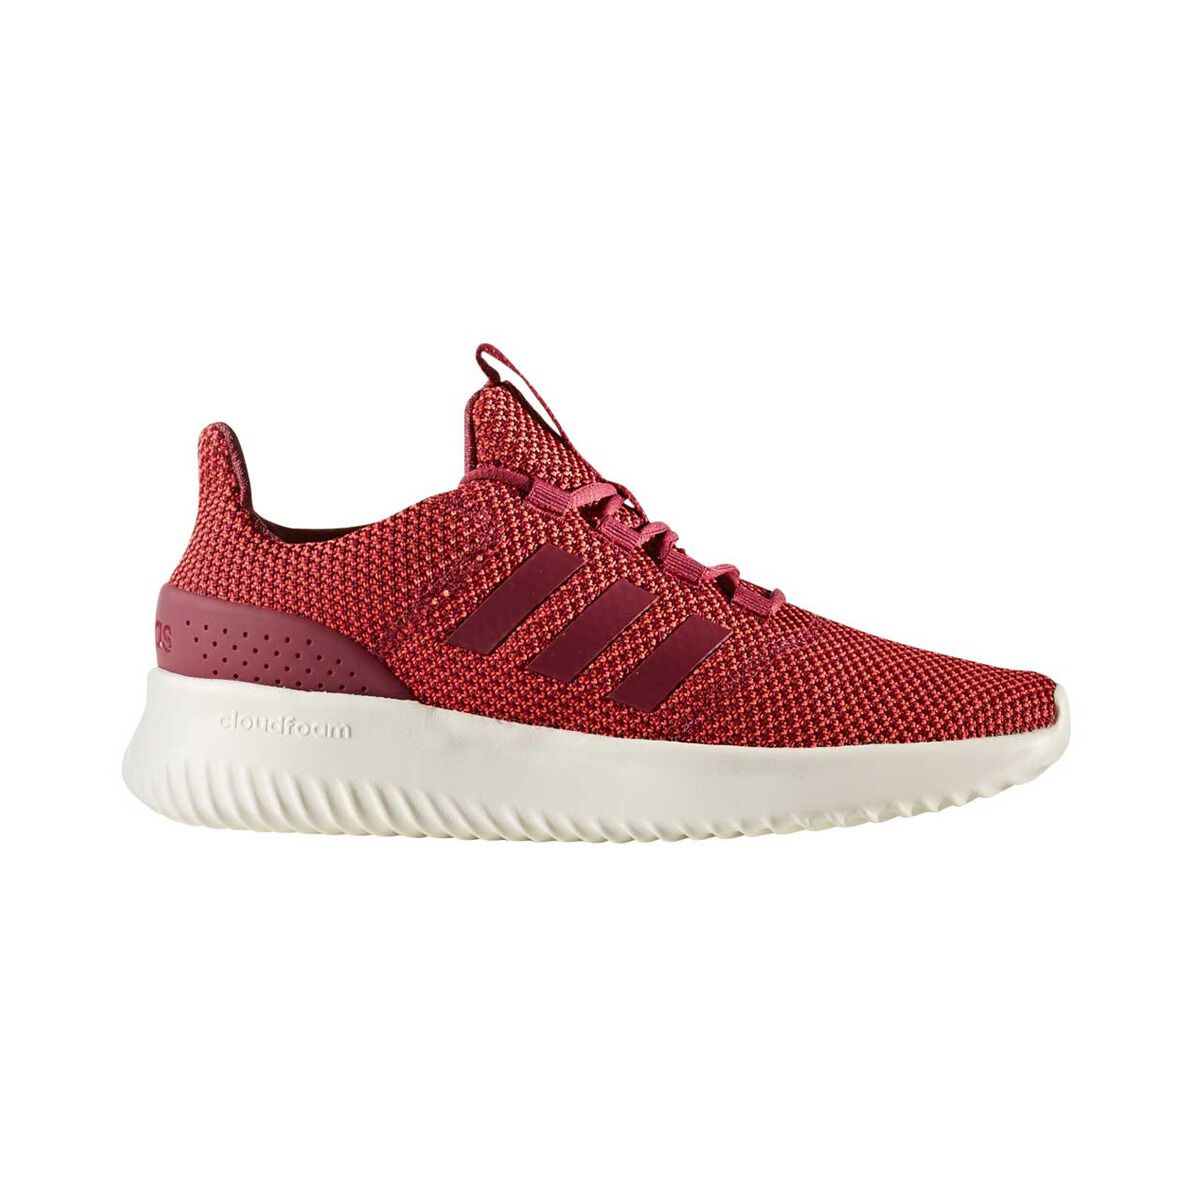 ... best price adidas cloudfoam ultimate womens casual shoes red white us 9  red white 576d6 b3018 d0fef2c6c